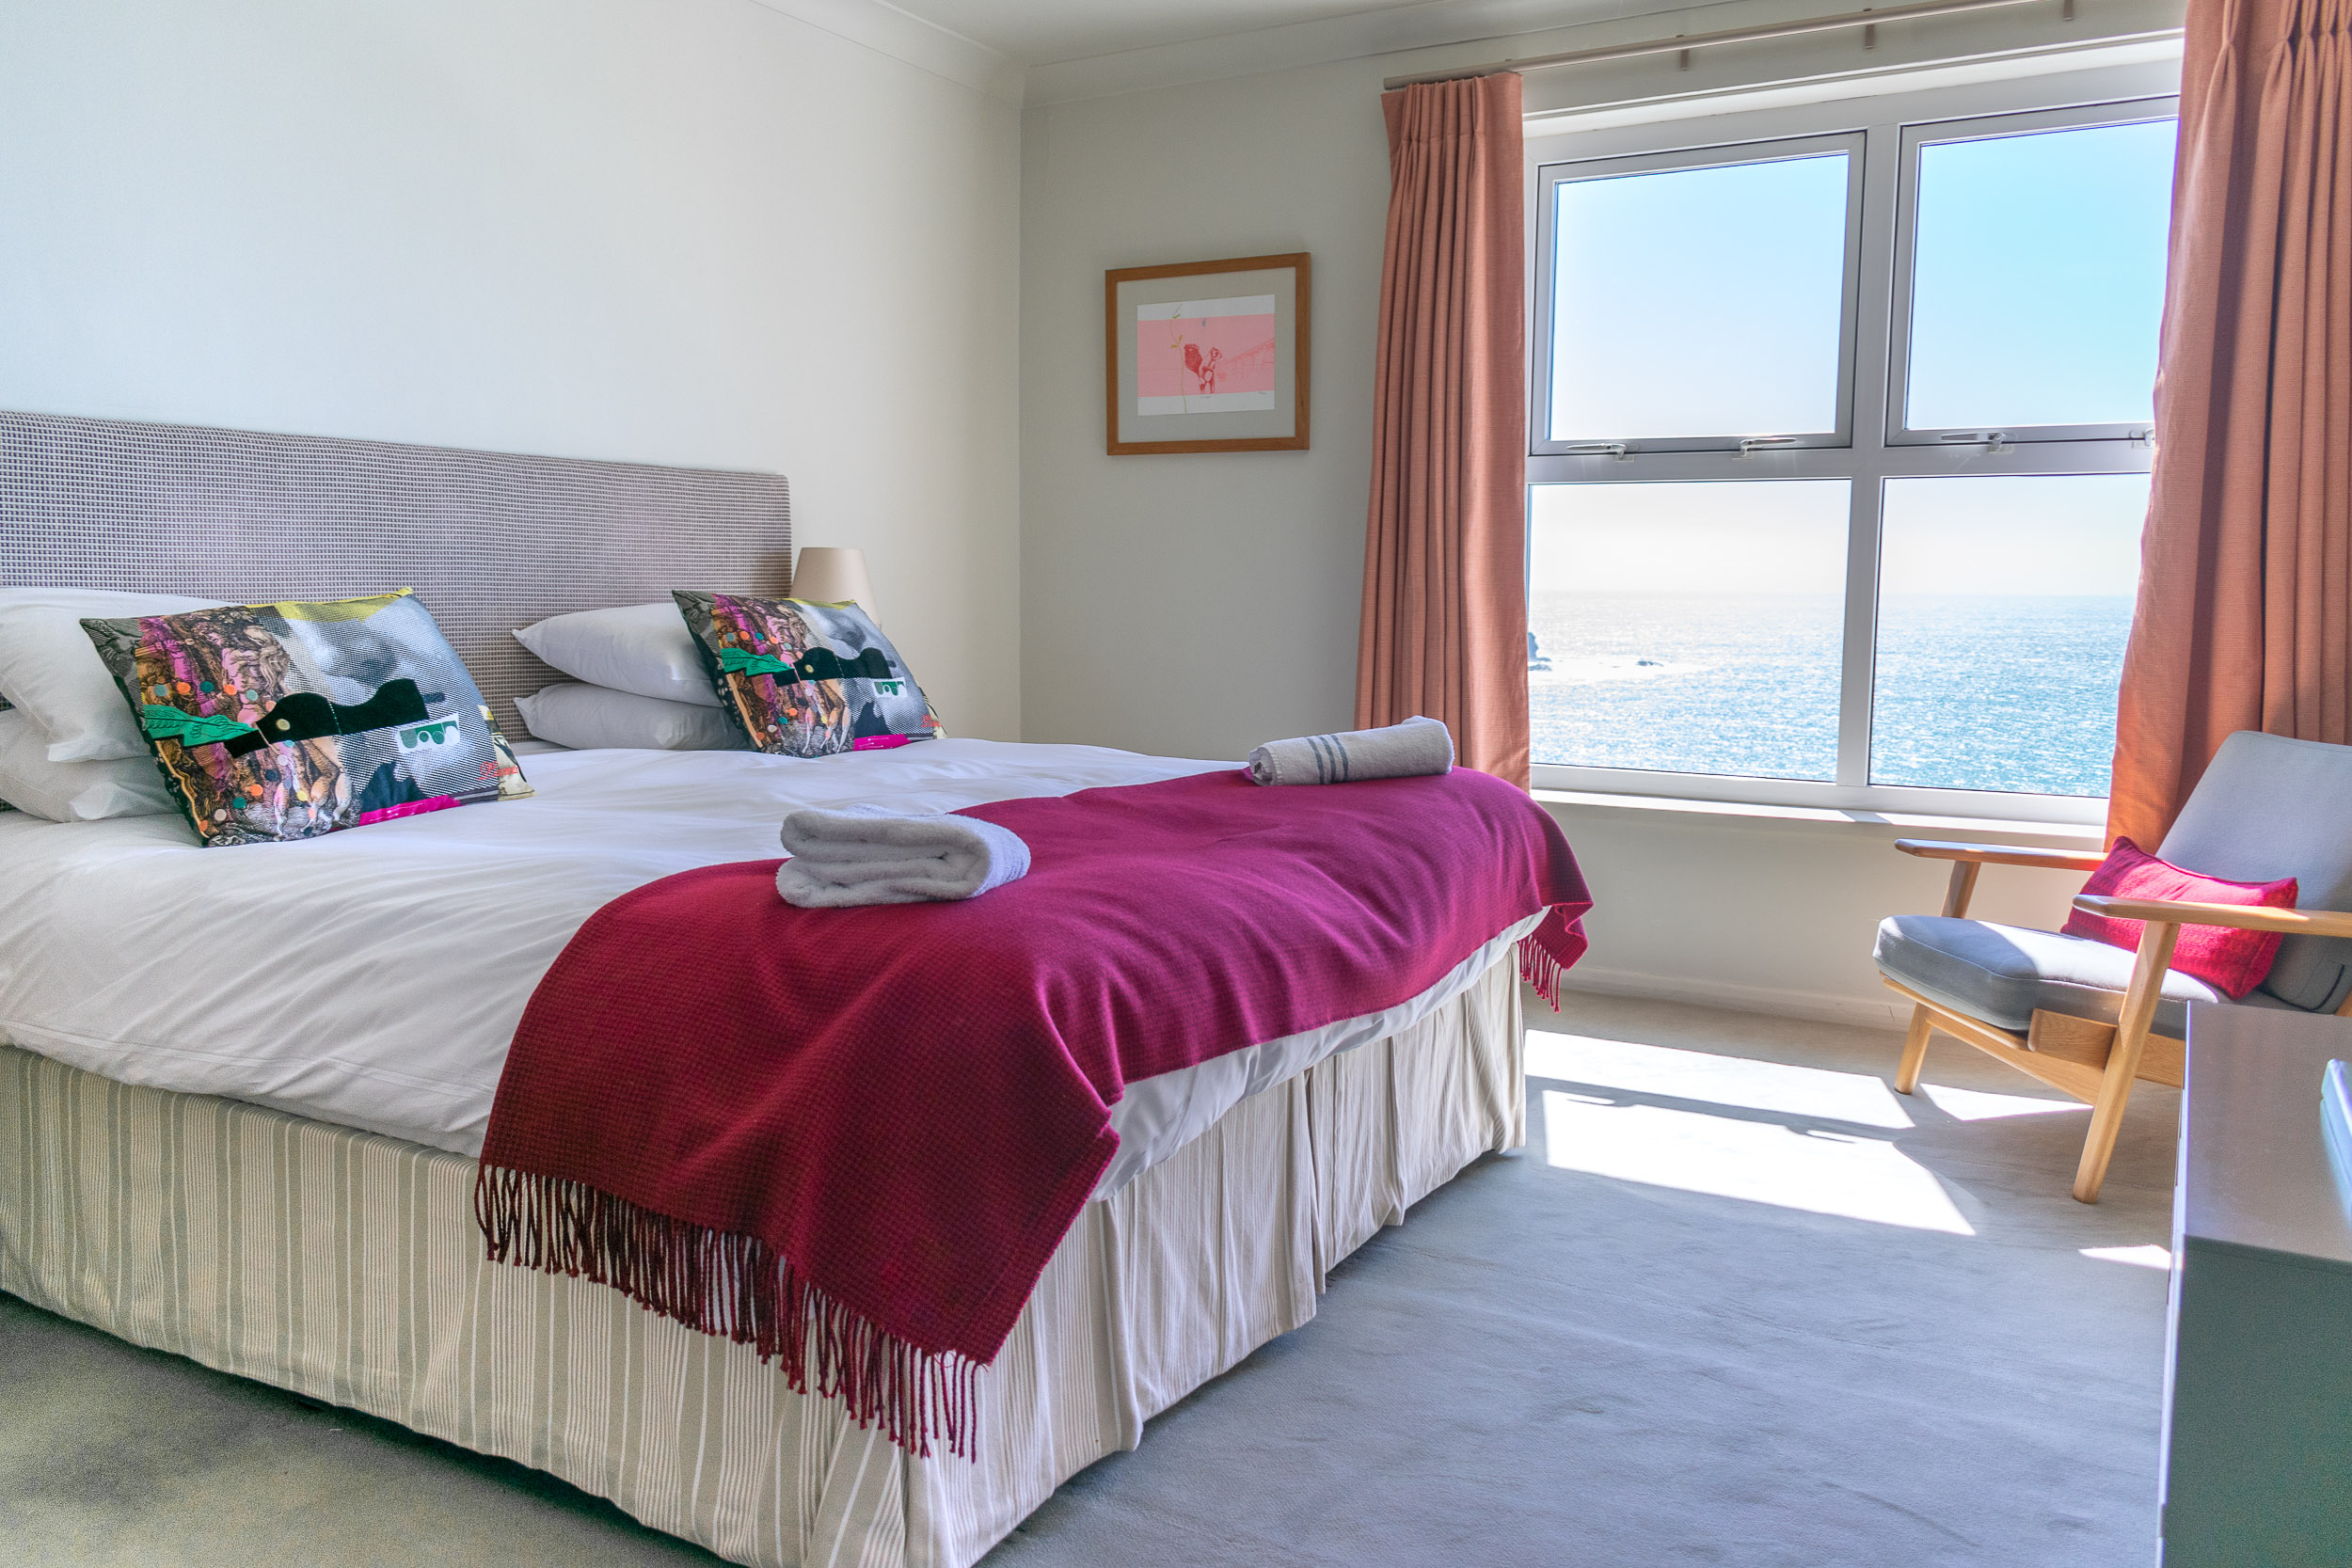 Room with a seaview.